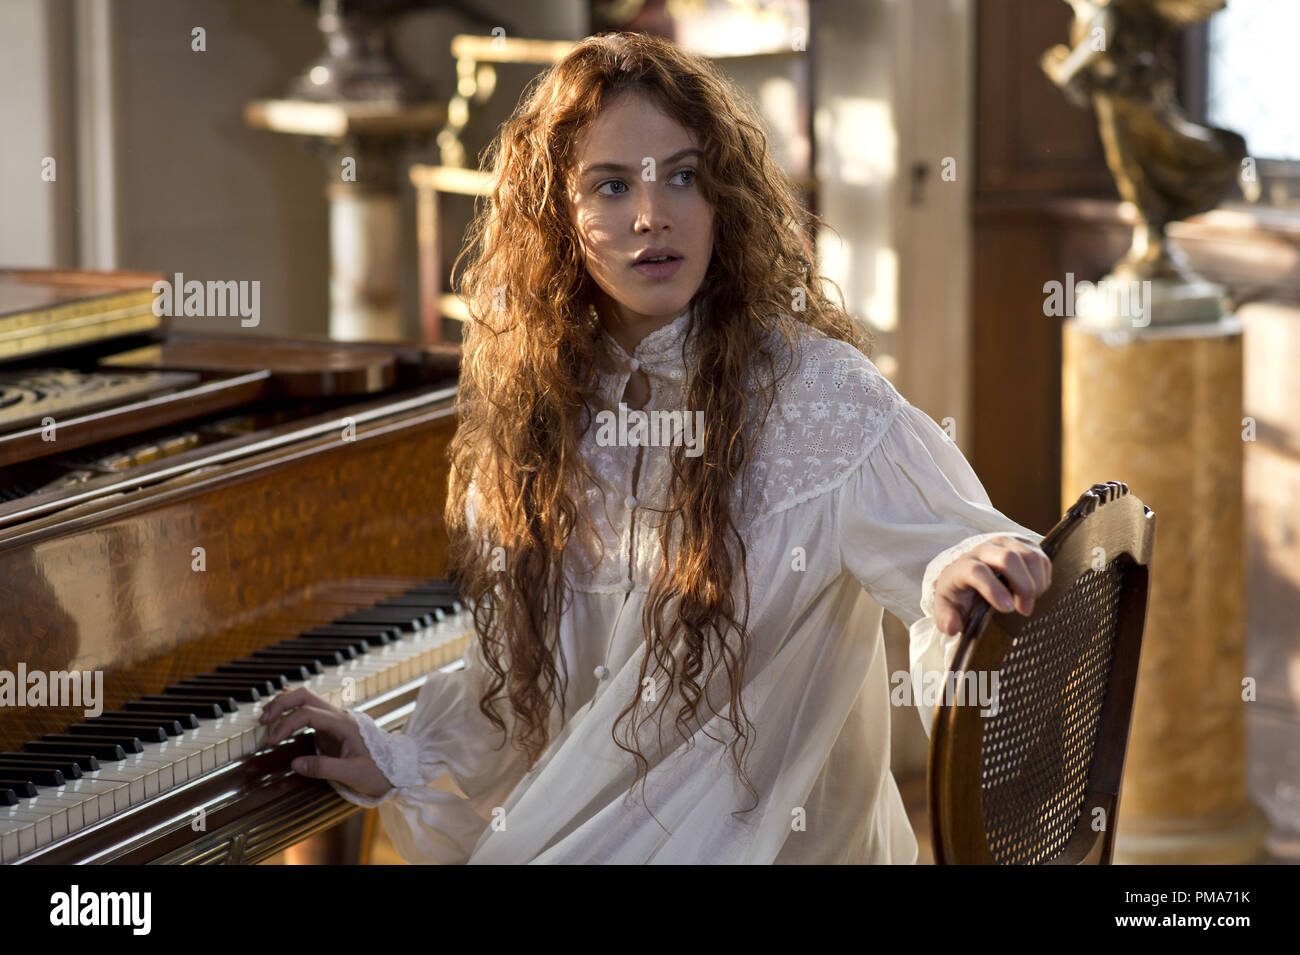 JESSICA BROWN FINDLAY as Beverly Penn in Warner Bros. Pictures' and Village Roadshow Pictures' romantic fantasy adventure 'WINTER'S TALE,' distributed worldwide by Warner Bros. Pictures and in select territories by Village Roadshow Pictures. - Stock Image